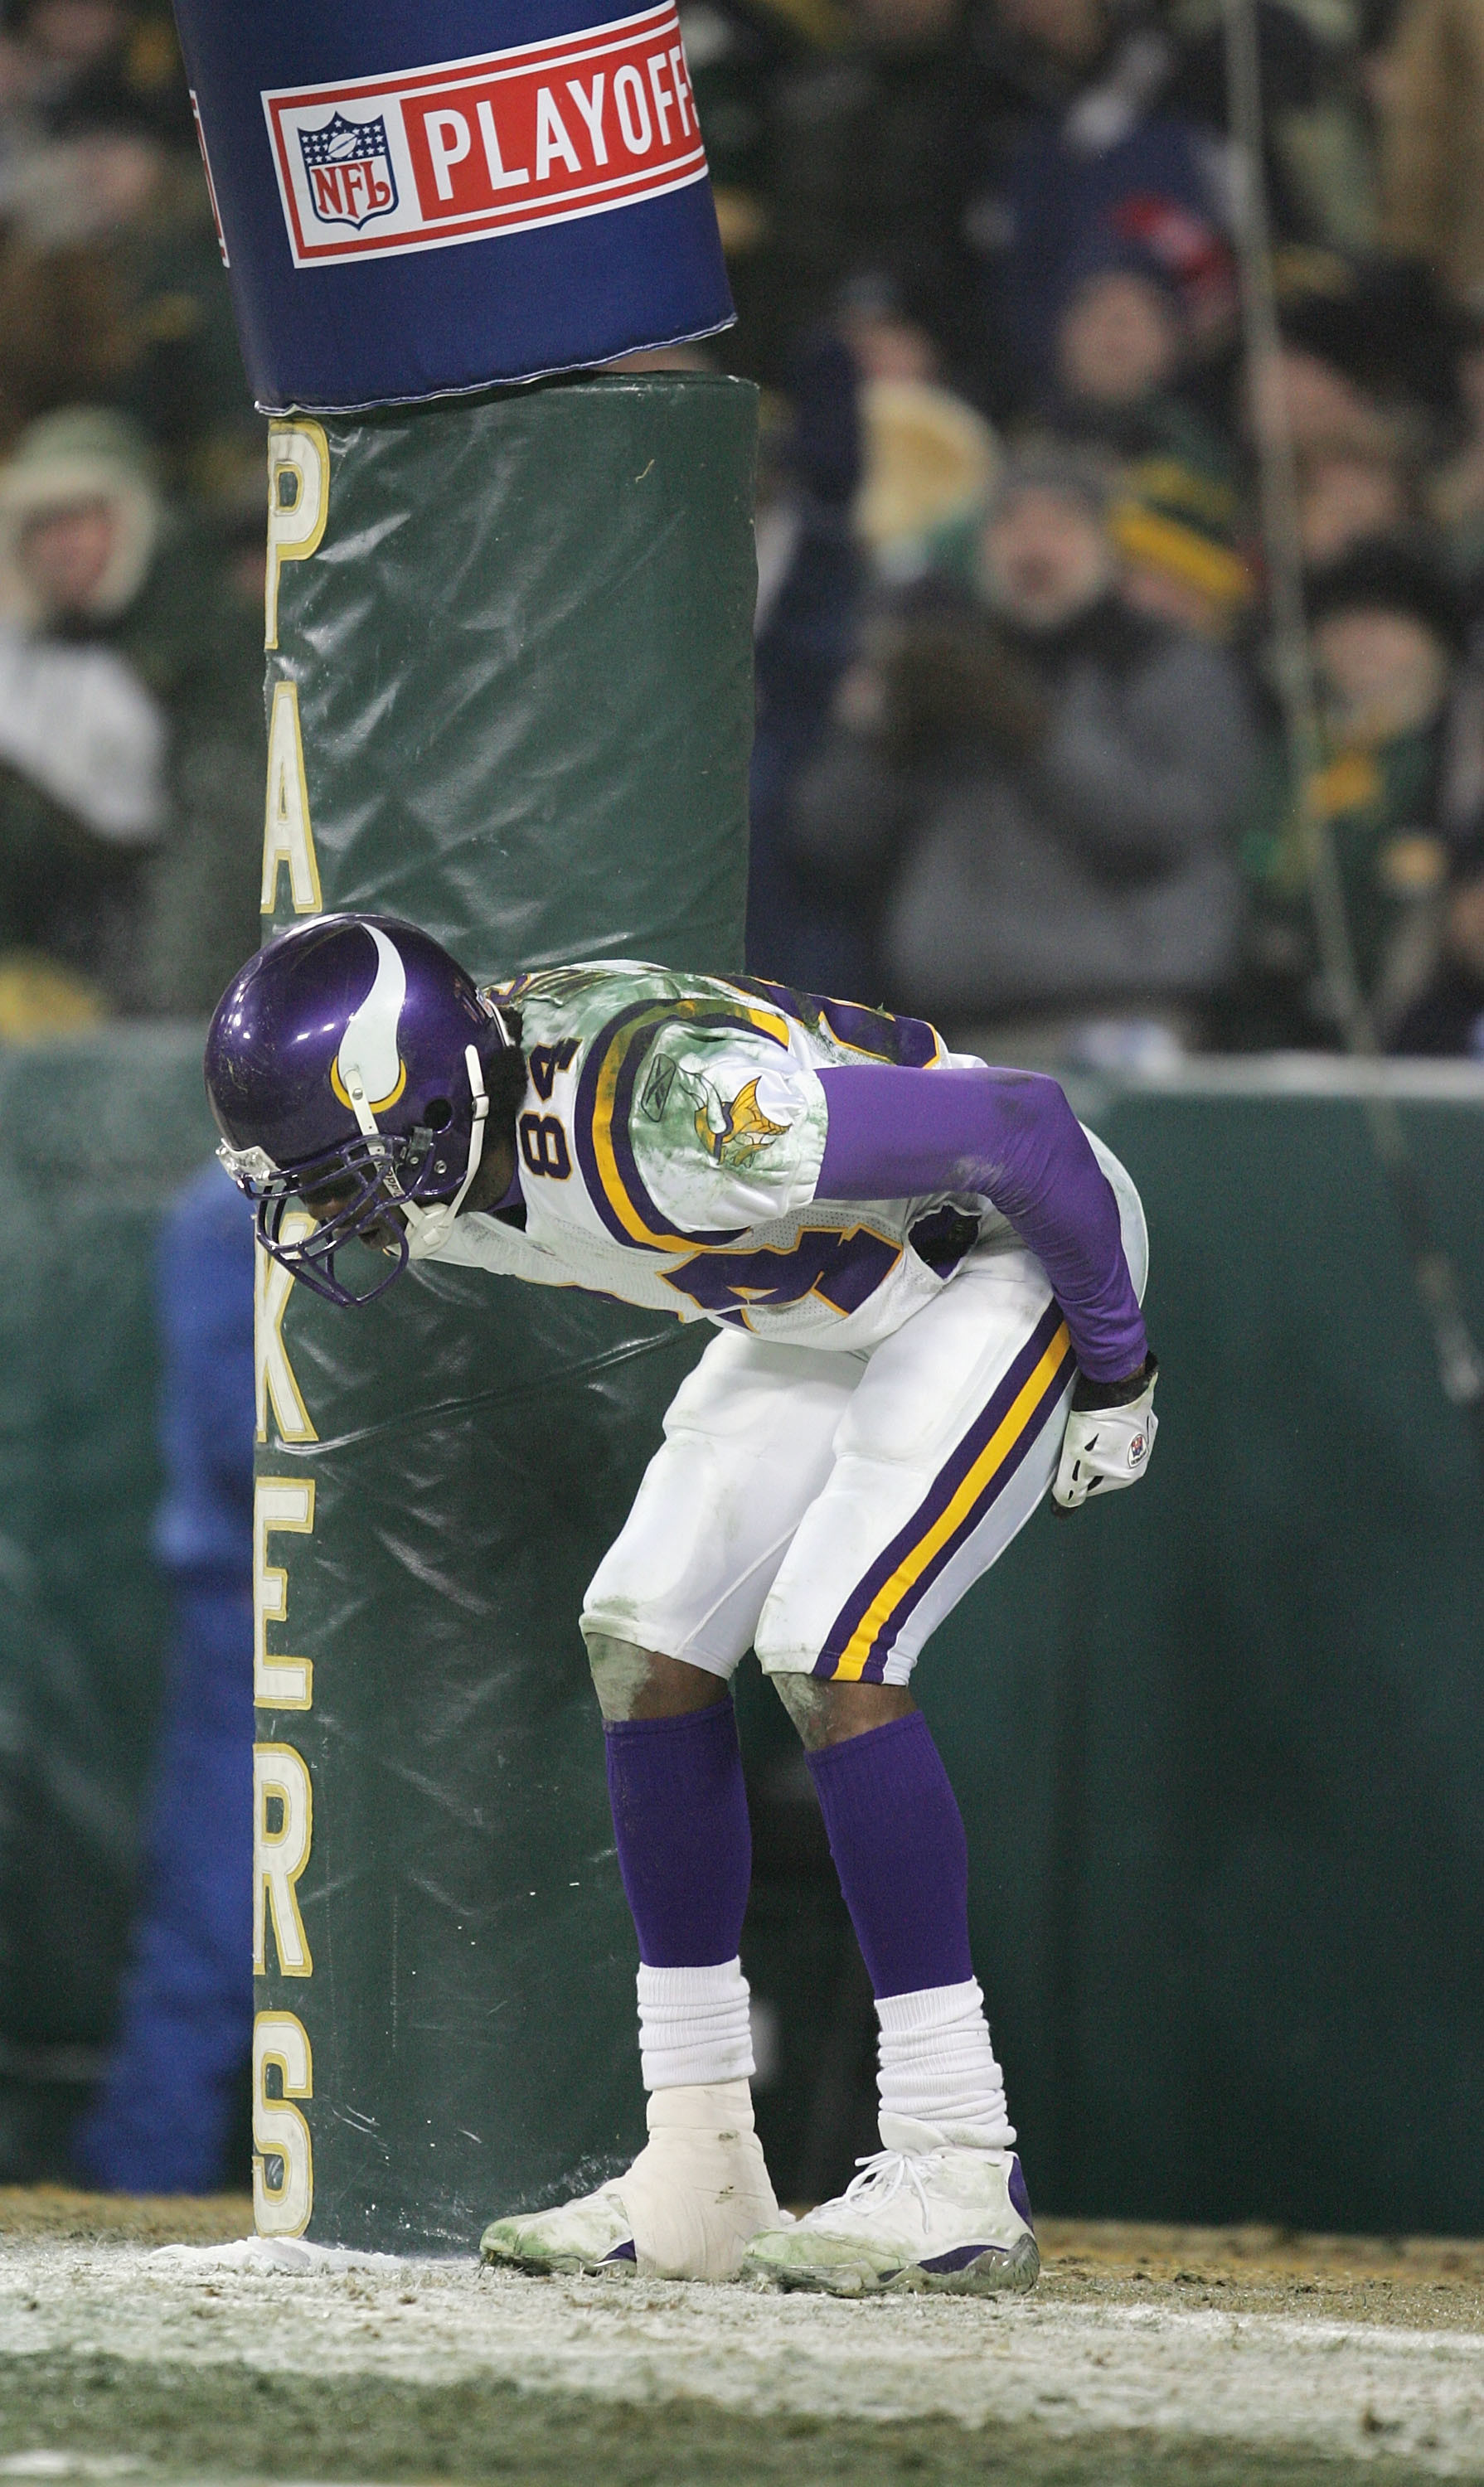 Res: 1790x3000, GREEN BAY, WI - JANUARY 9: Wide receiver Randy Moss #84 of the